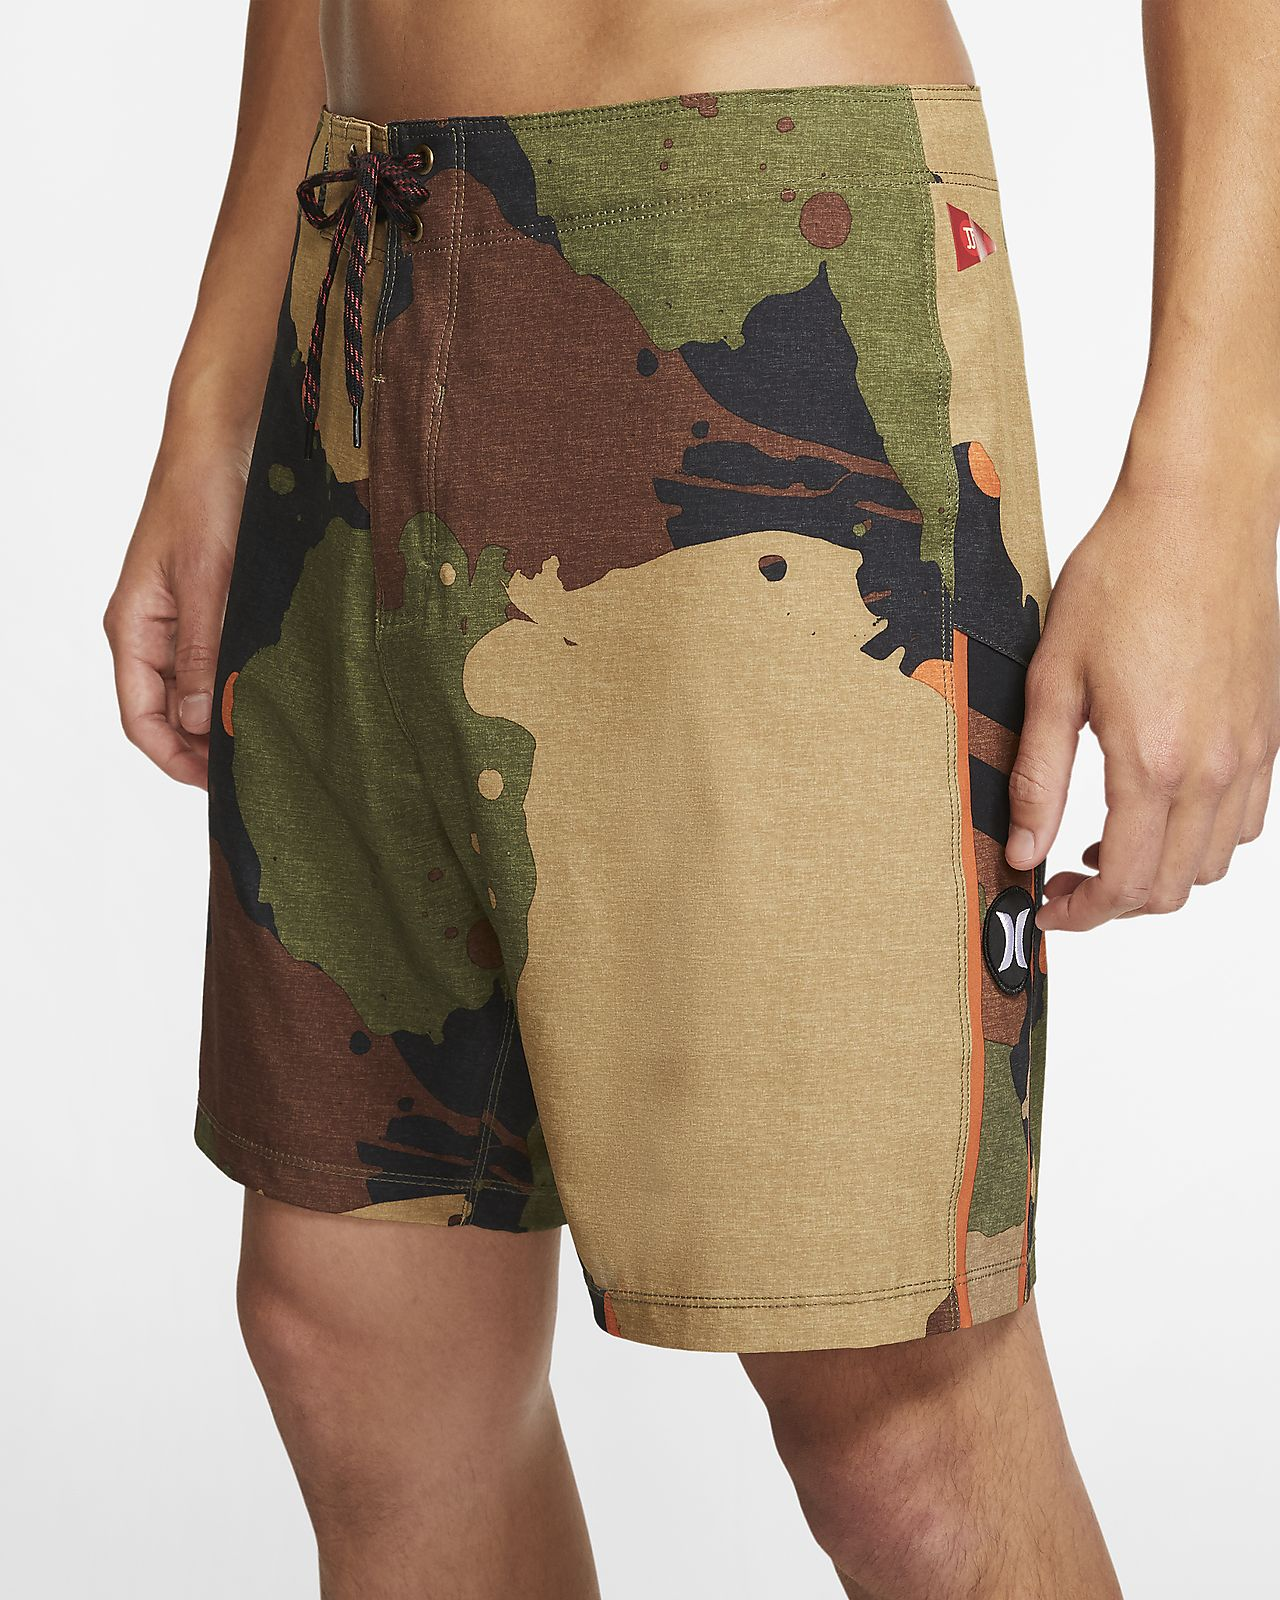 Hurley Phantom JJF5 'Camo' Men's 46cm (approx.) Boardshorts